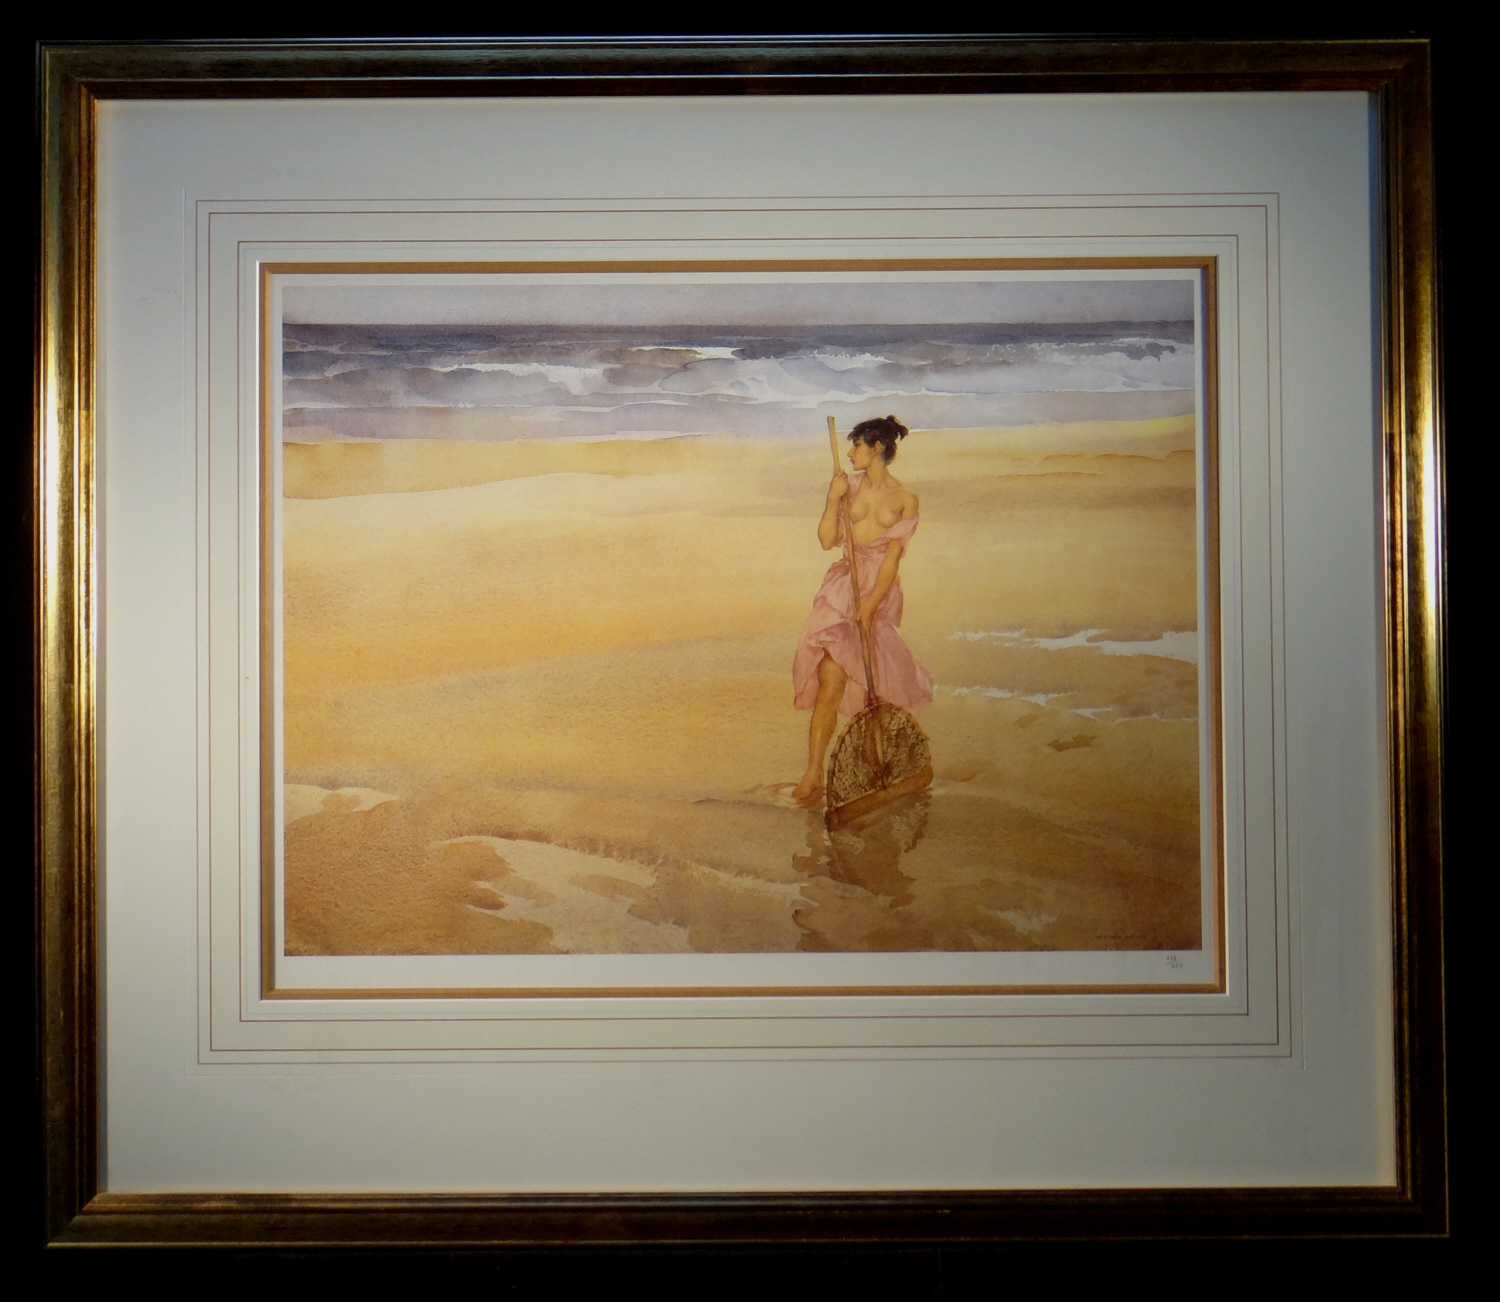 limited edition print, unsuccessful shrimper, sir william russell flint